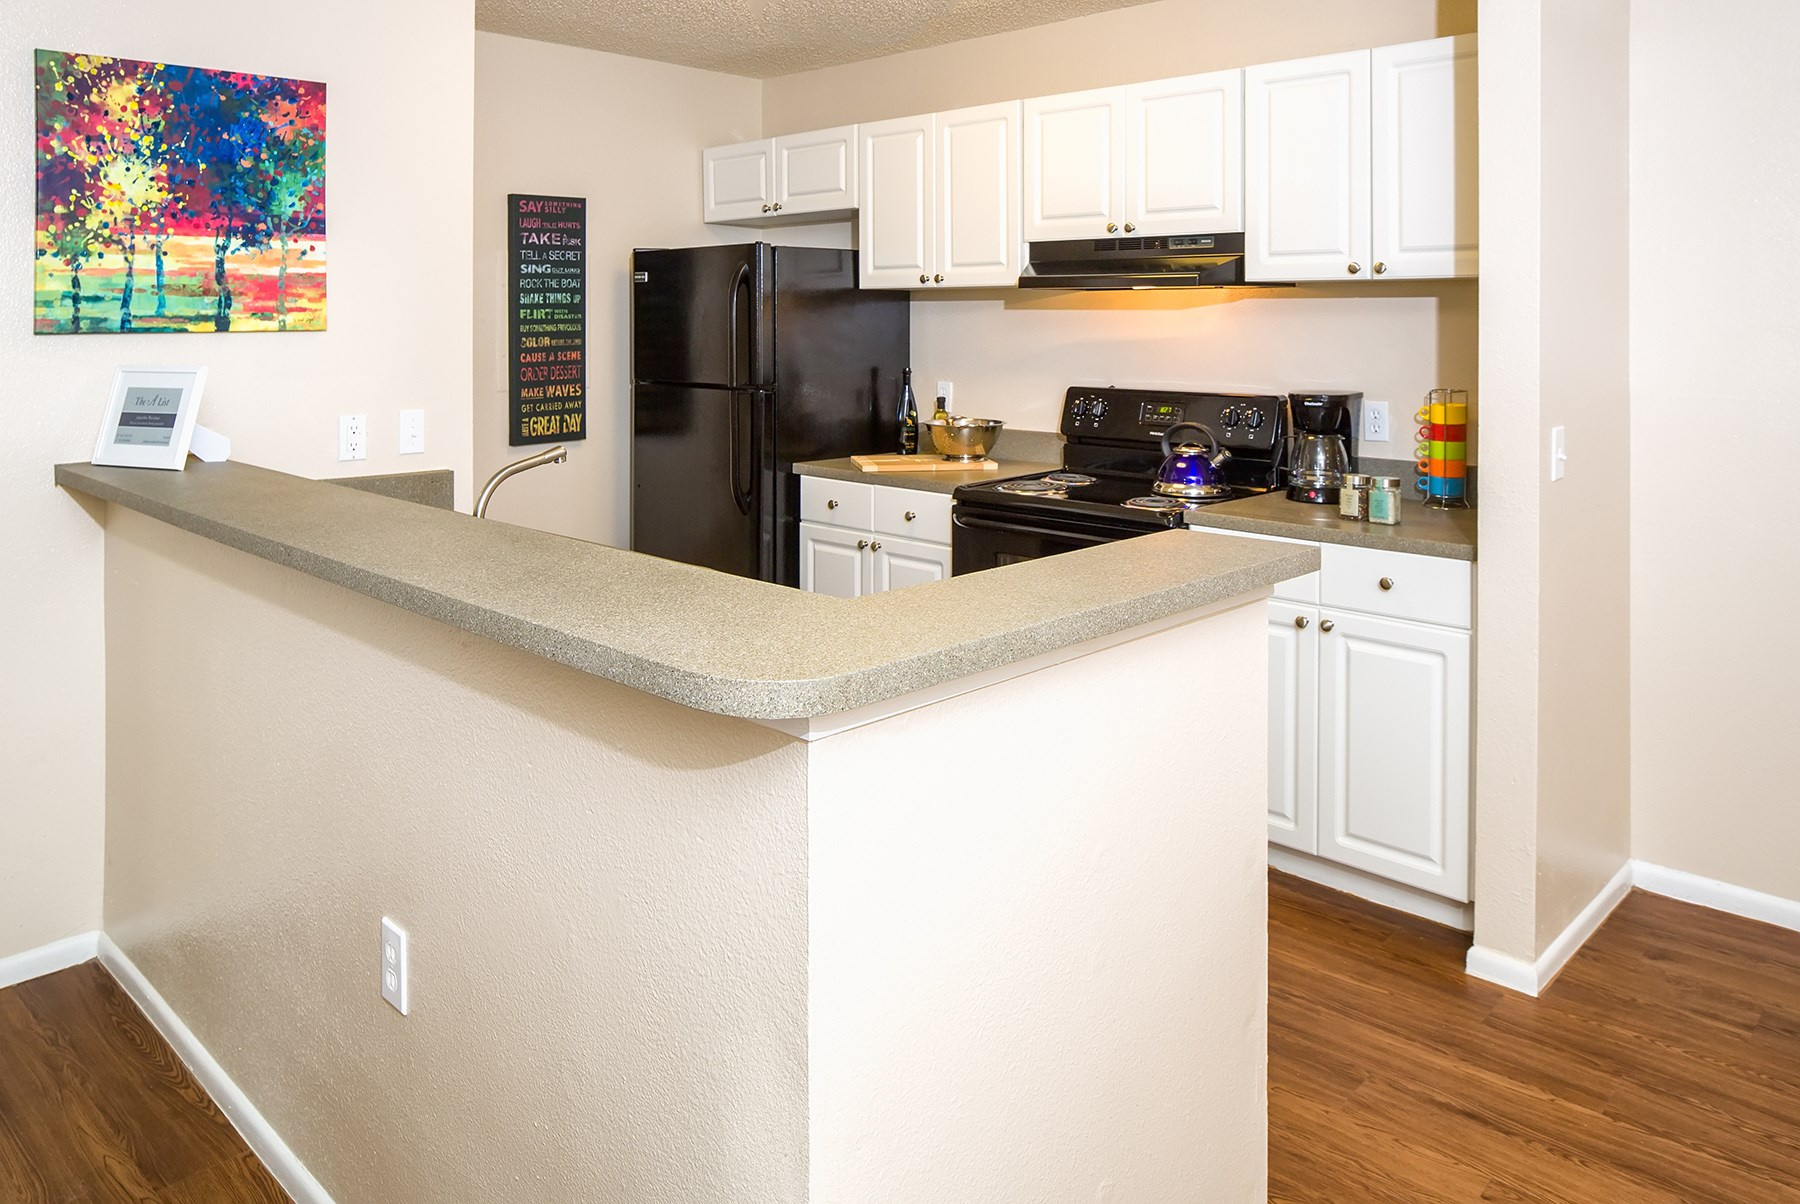 Kitchen at Sawgrass Cove Apartments in Bradenton, FL